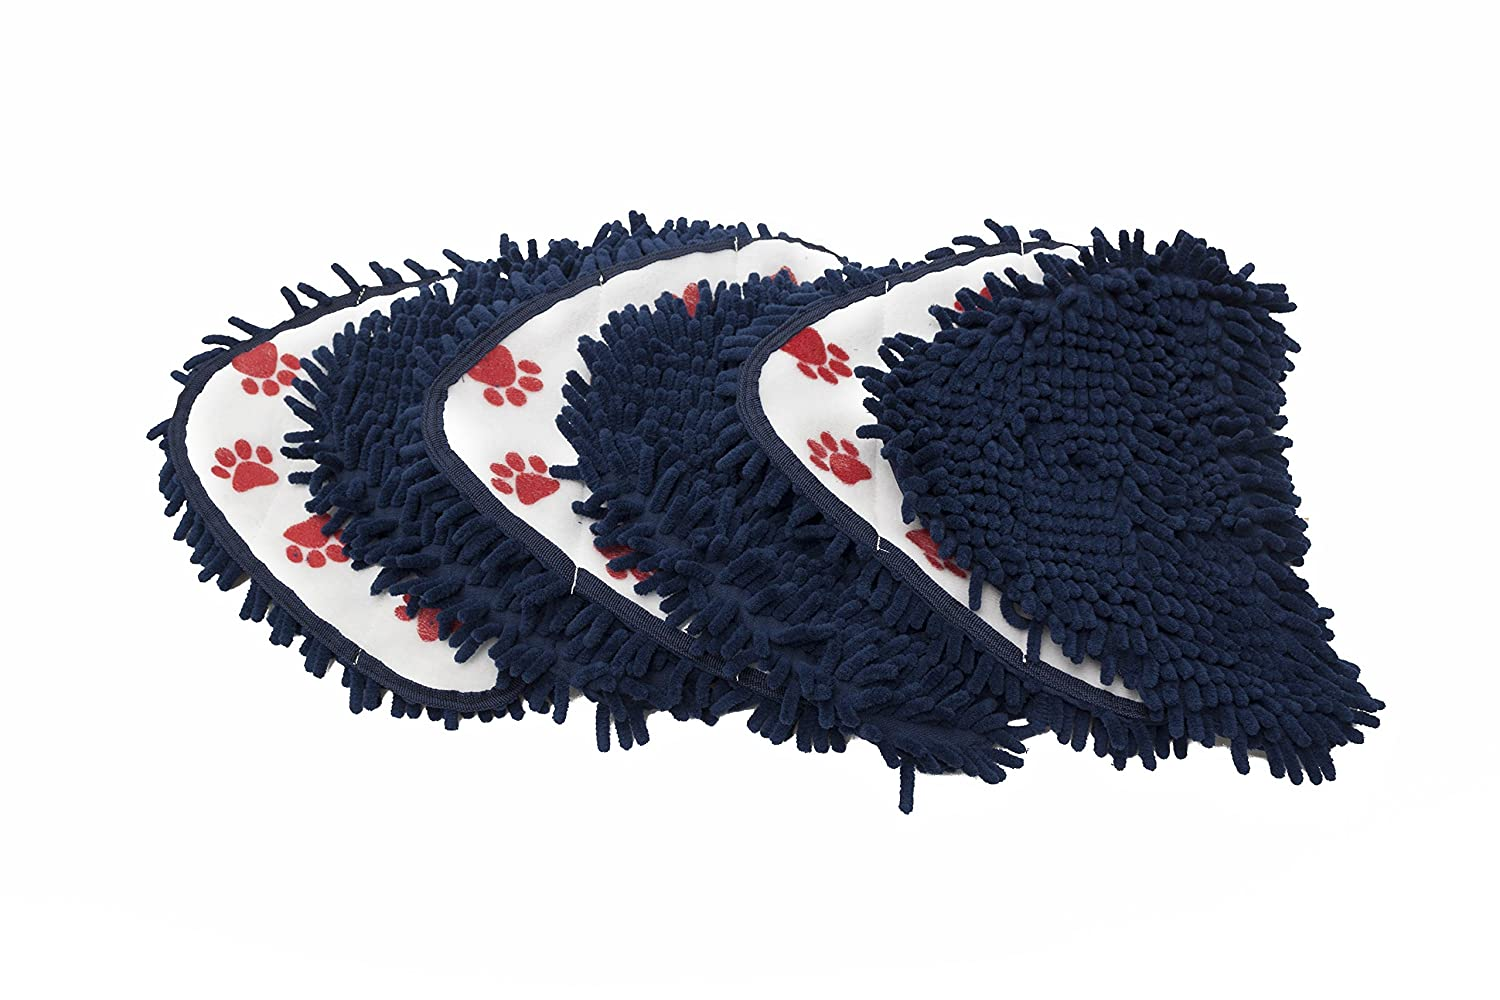 Ningbo Haishu HuaxinYicheng Trade Co LTWHOME Washable Coral Pet Steam Cleaning Pads Fit for Vax S2 Series and Hoover WH20200 Steam Mop Pack of 6 Ltd.